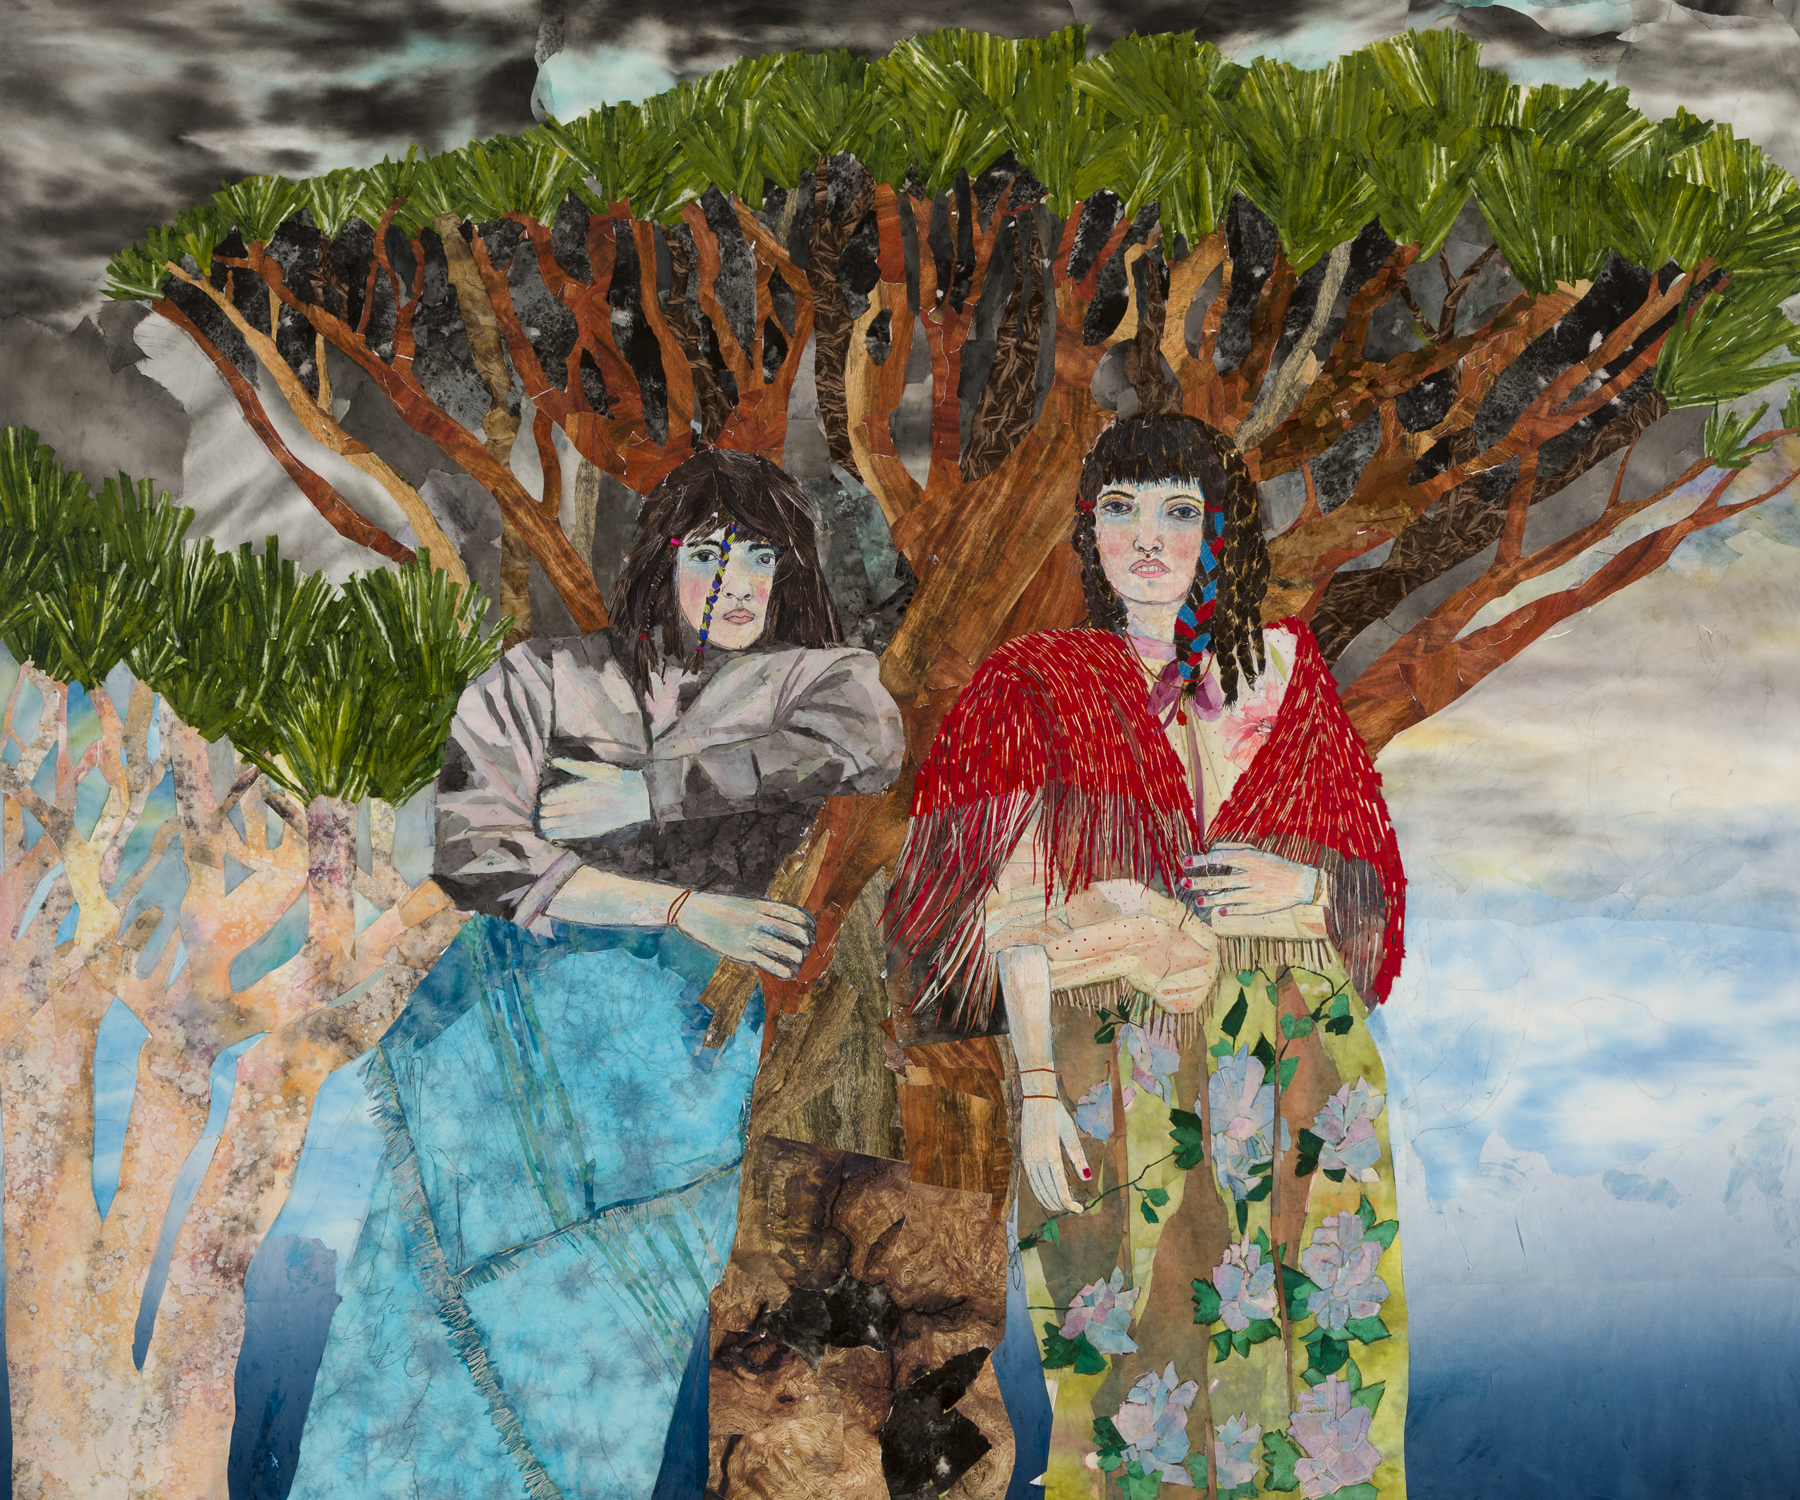 María Berrío,  A Cloud's Roots , 2018, collage with Japanese papers and watercolor paint, 80 x 96 inches. Courtesy the artist and Kohn Gallery.